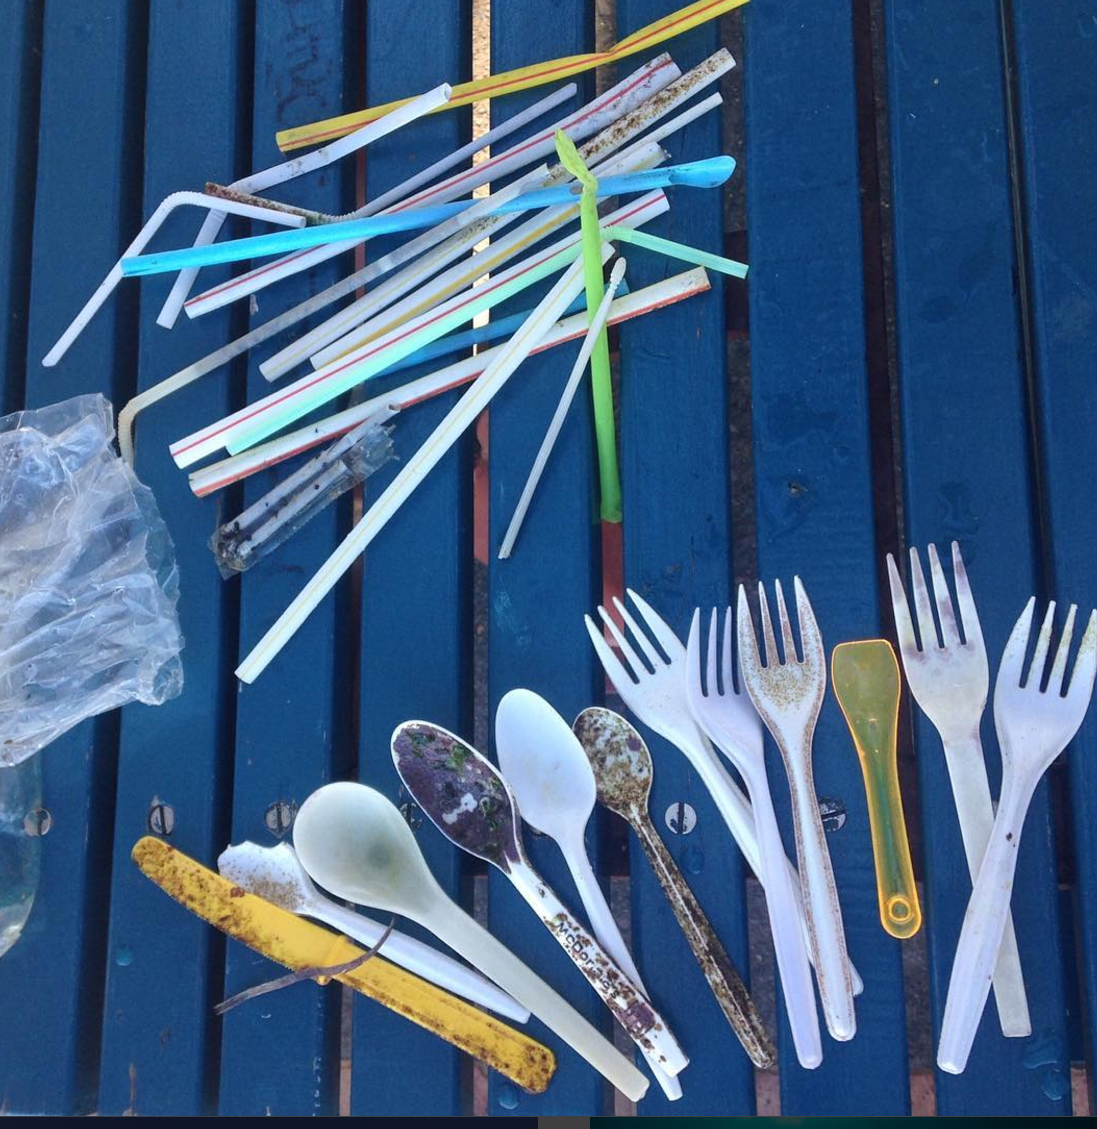 My friend @rosieleaney is a Dive Instructor and Underwater Photographer at Dive Centre Manly. She collected this huge collection of plastic straws and cutlery on a short swim back to the beach after diving at Manly Cover. Ditch the plasic!